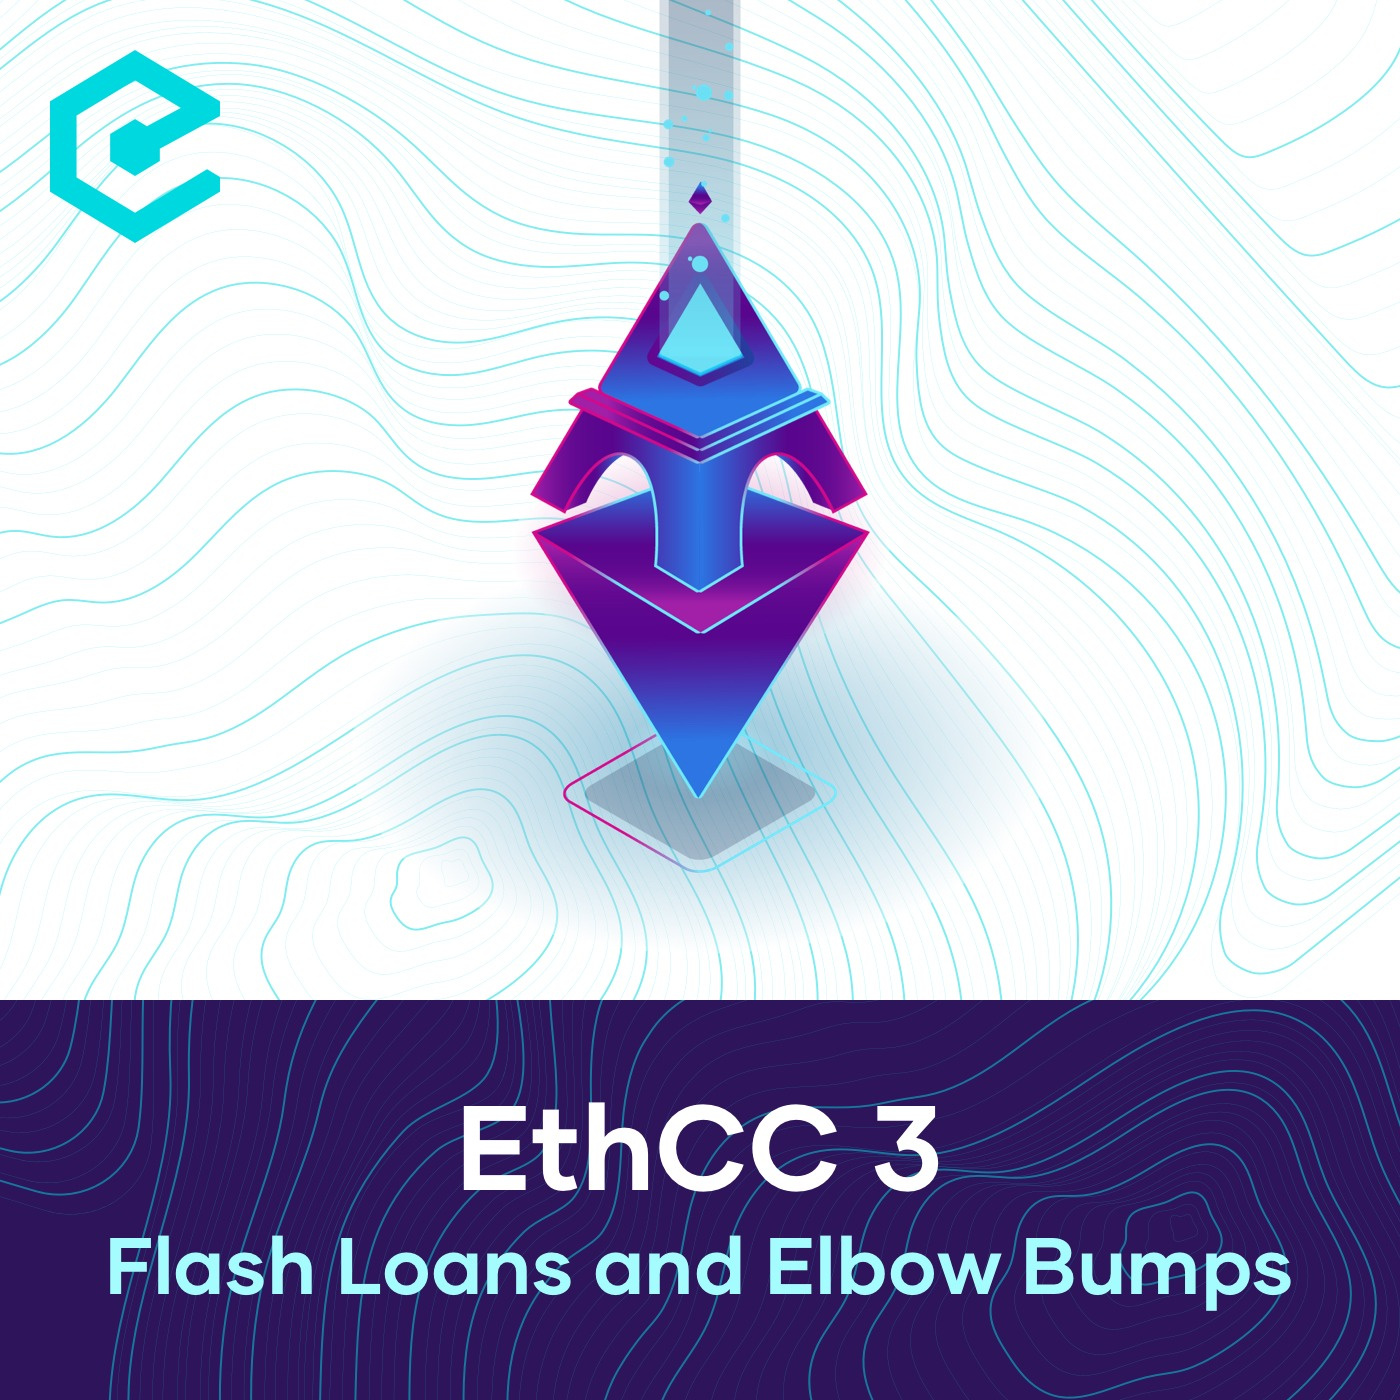 EthCC 3 – Flash Loans and Elbow Bumps